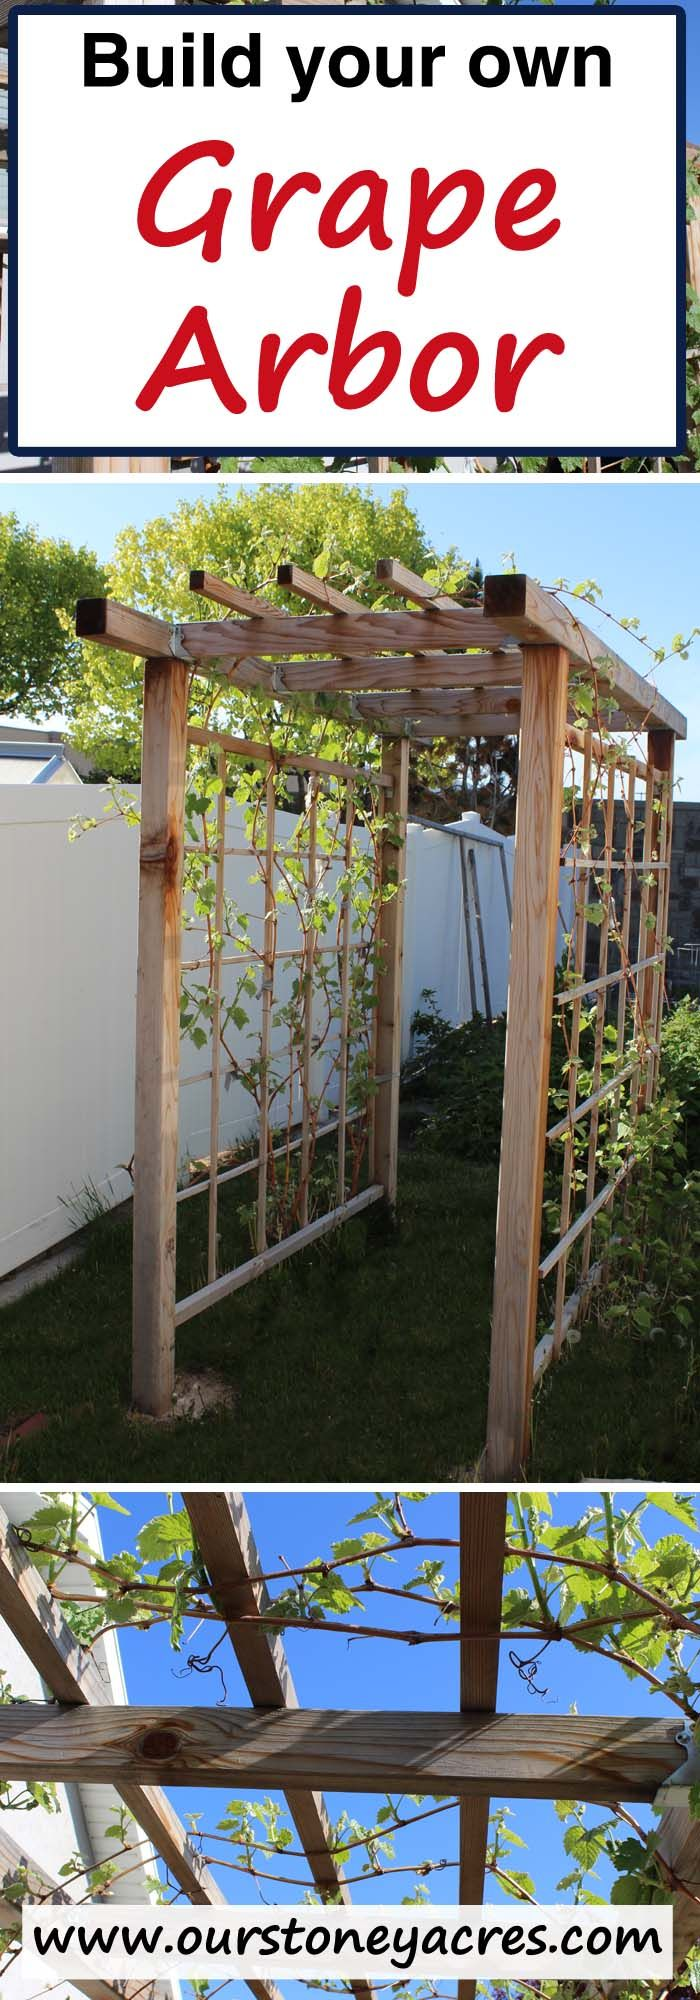 Building A Grape Arbor Is A Diy Project You Can Tackle